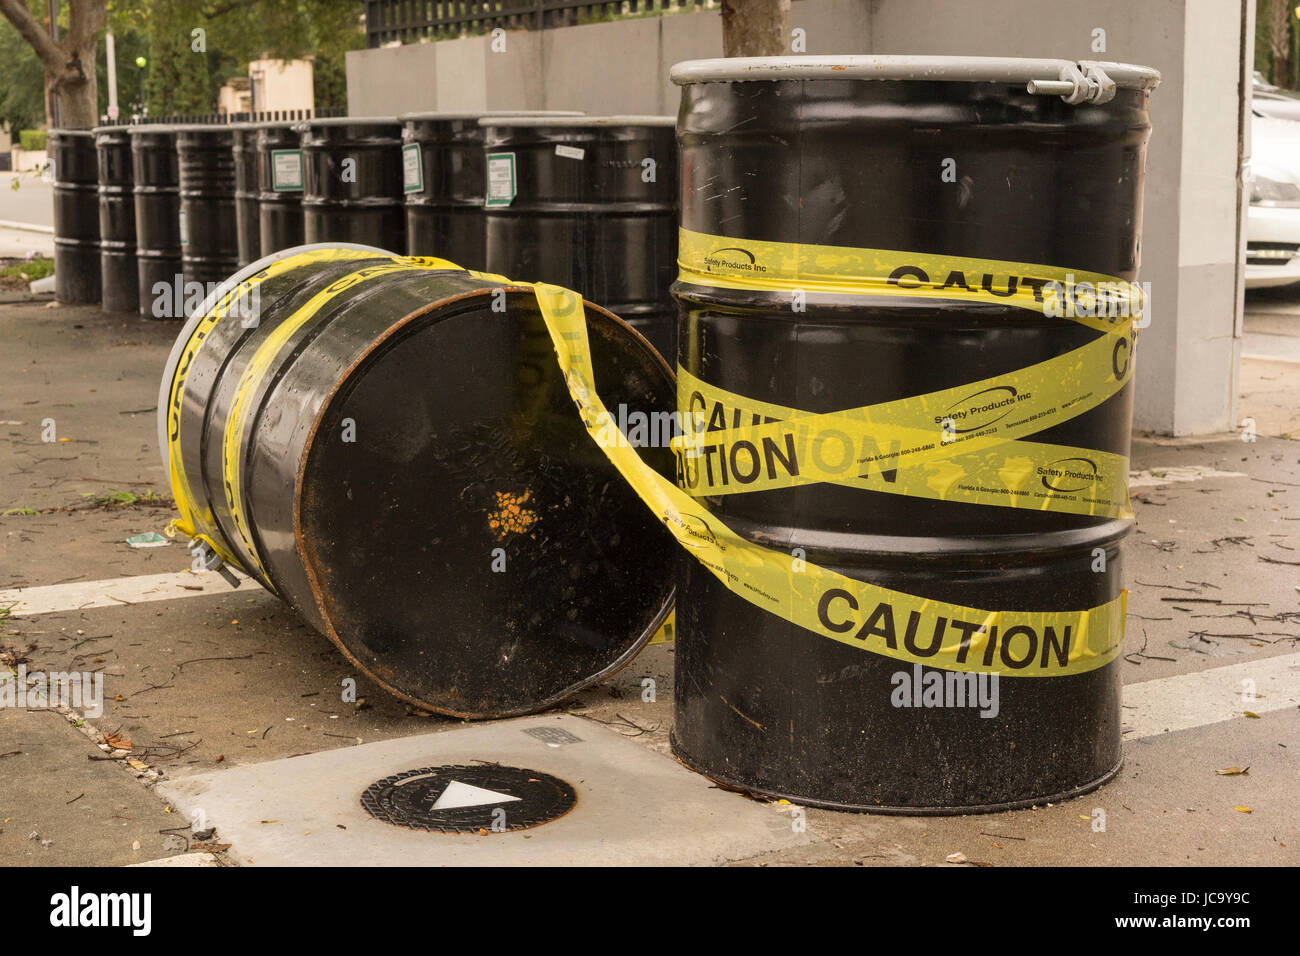 Caution Barrel Of Waste Containers Stock Photo